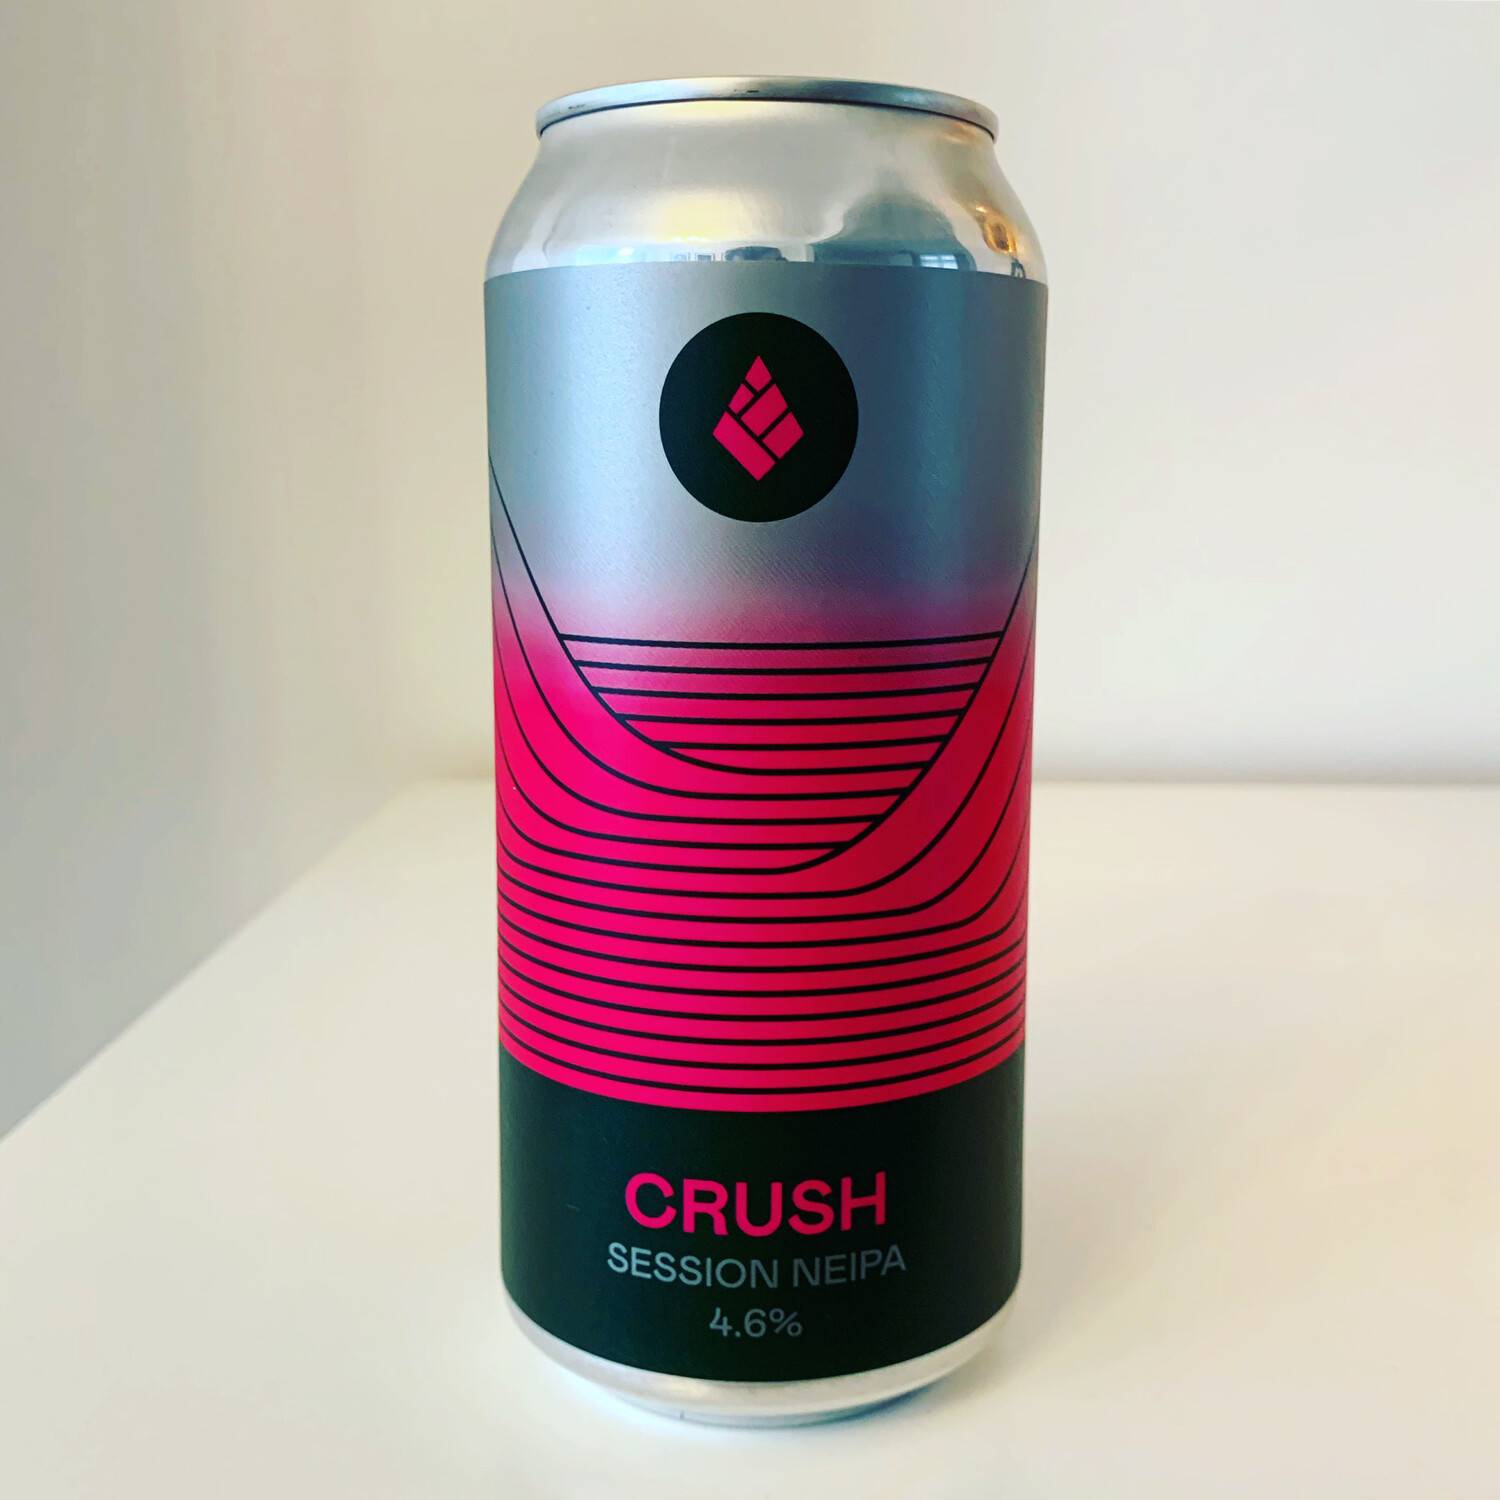 NEW Drop Project 'Crush' Session NEIPA 440ml - 4.6%